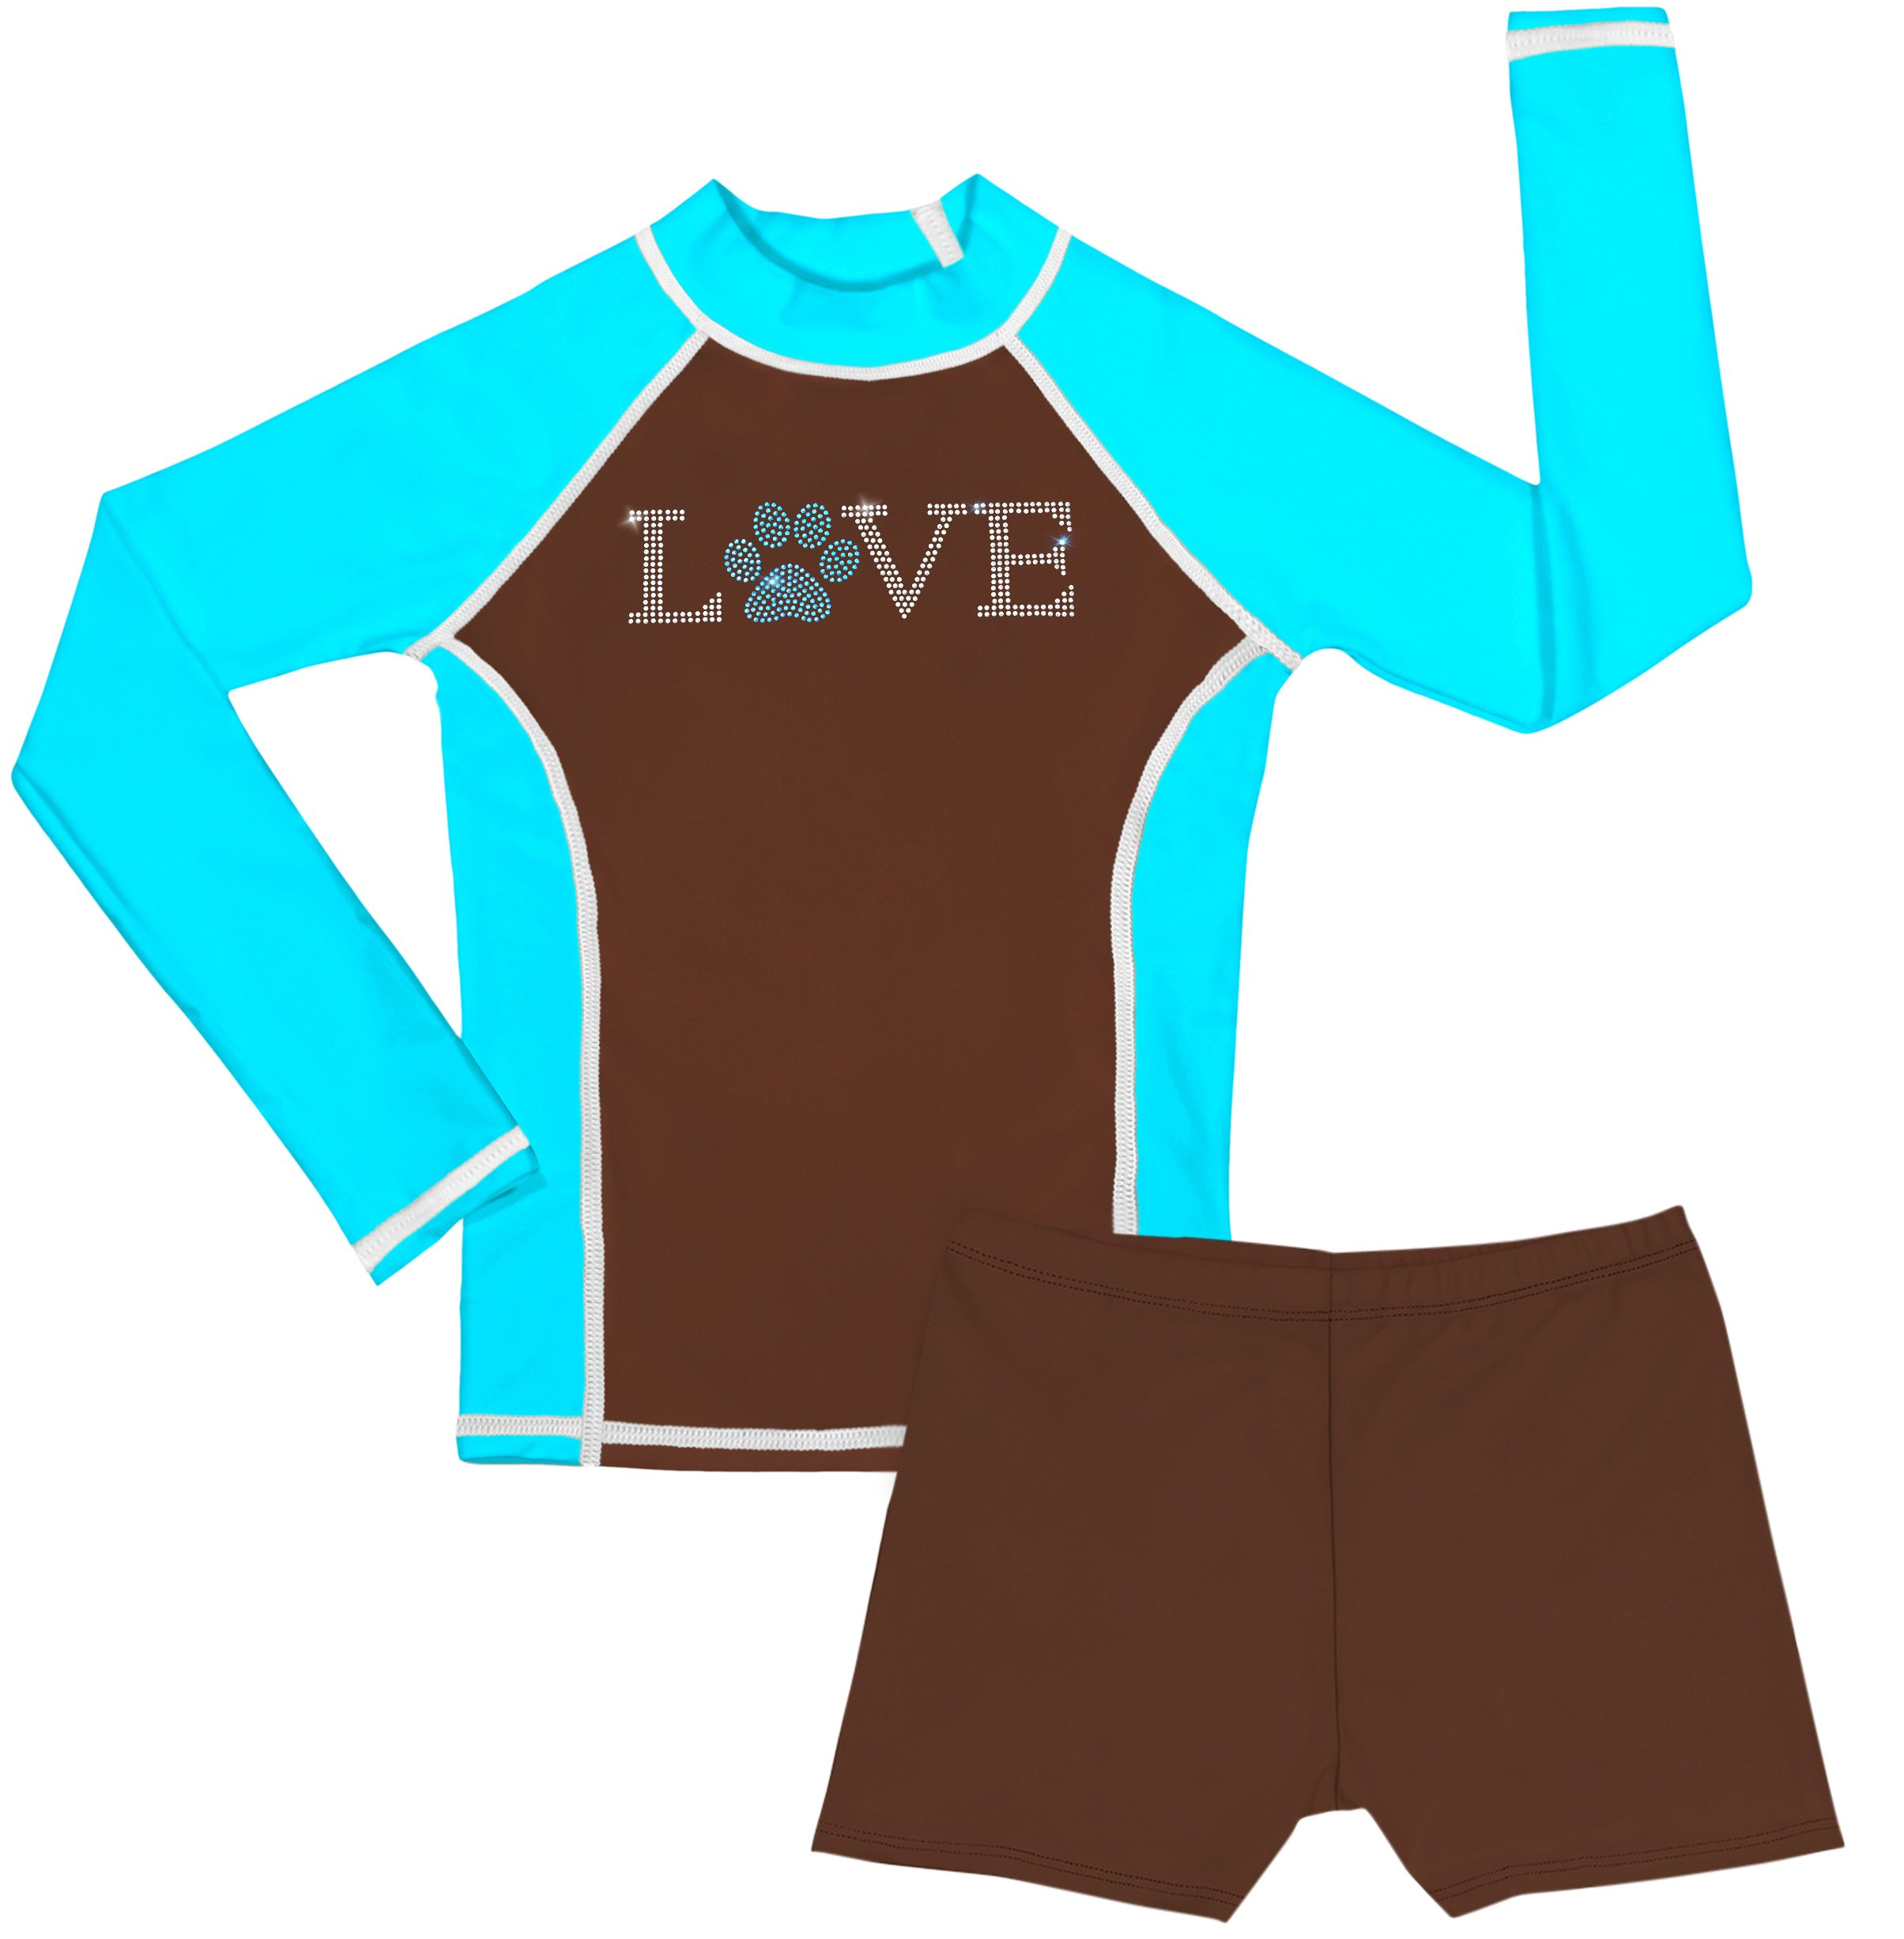 grUVywear UV Sun Protective UPF 50+ Girls Long Sleeve Rash Guard and Shorts Set (M 7-8, Love Paw)